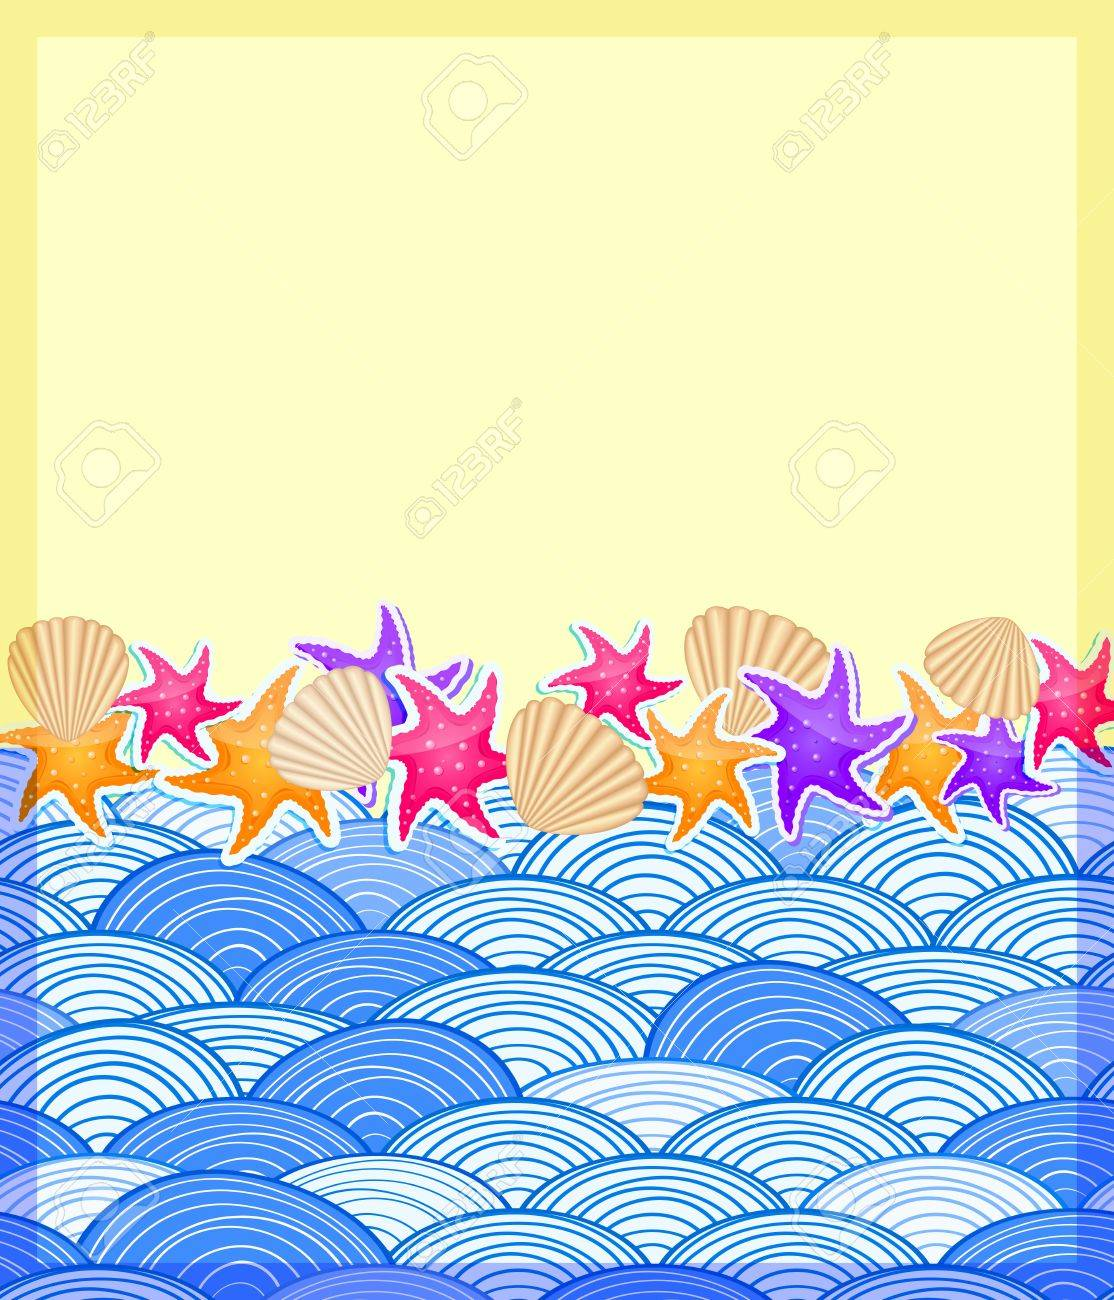 shells and starfishs on beach sand and wave ocean invitation